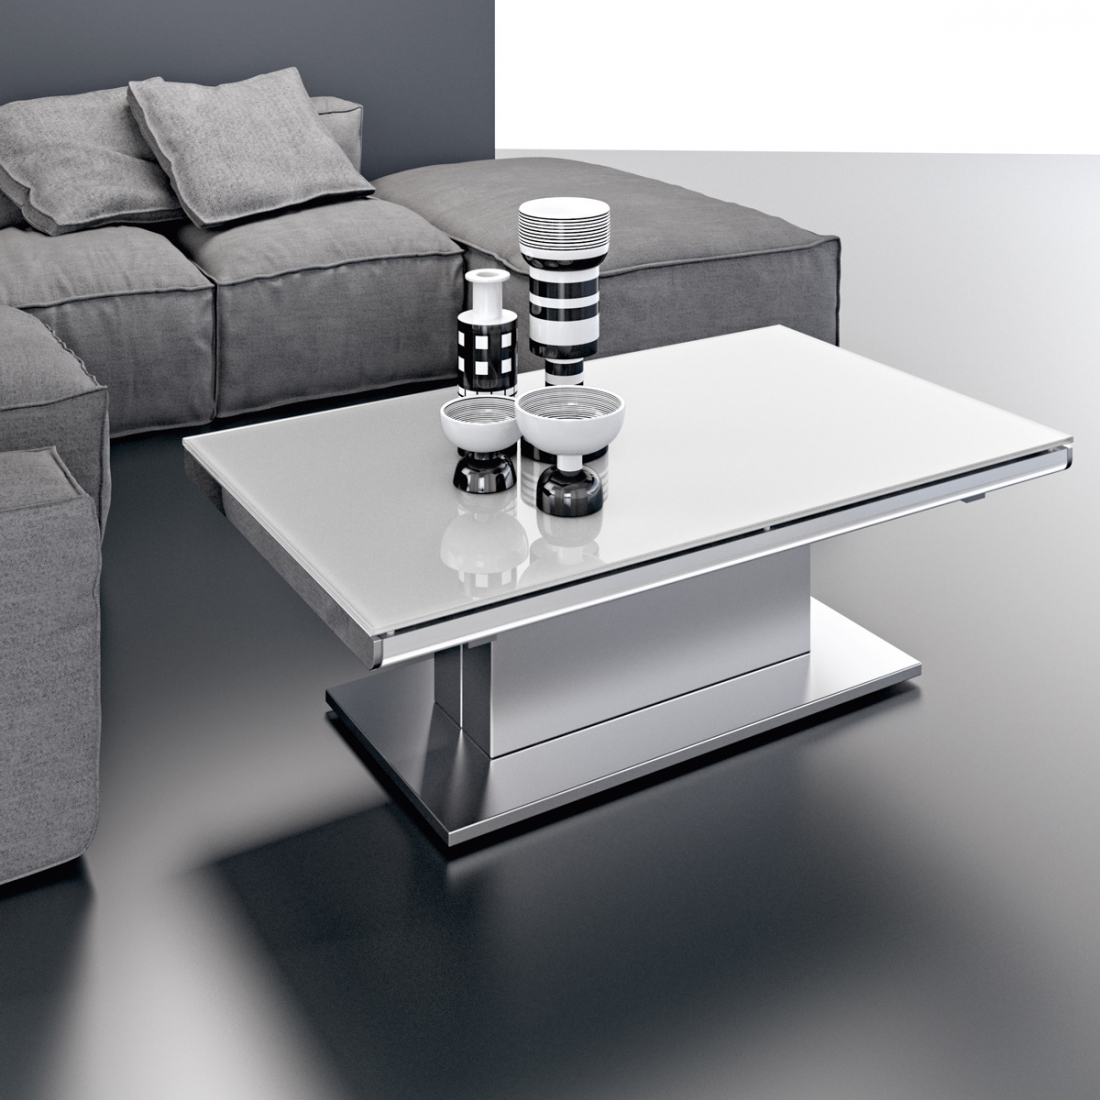 Table basse modulable design ares glass inox - Table basse italienne design ...